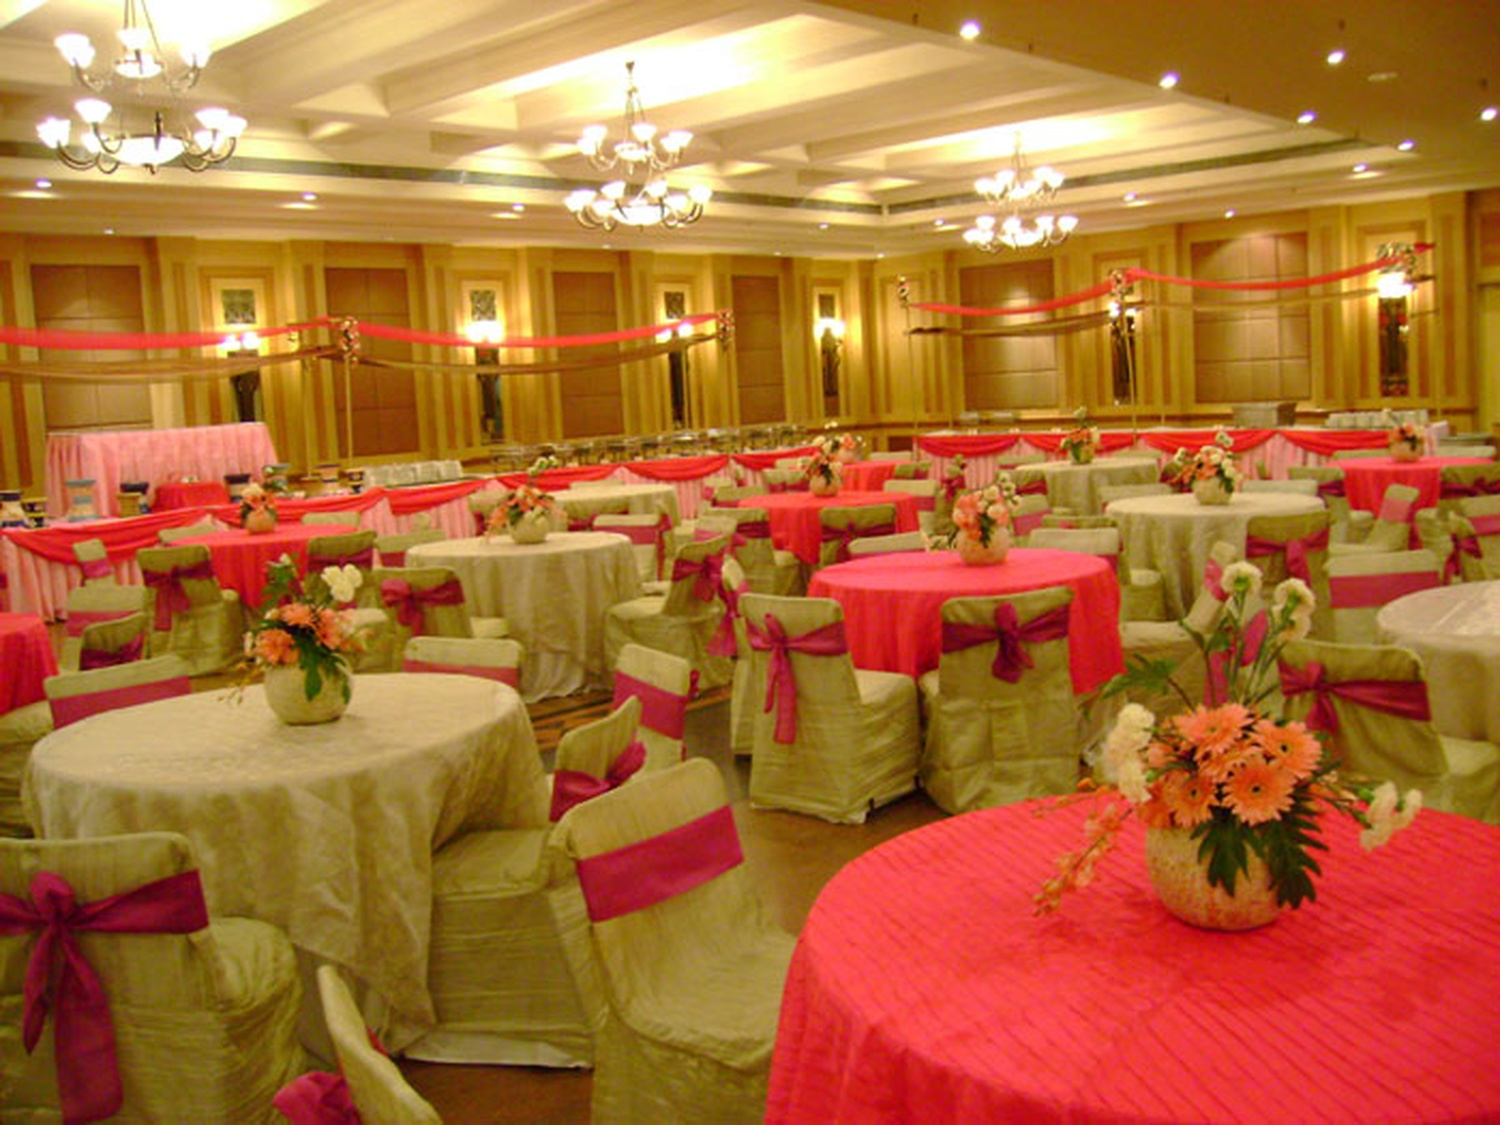 Balaji events wedding planner in lucknow lucknow weddingz overview junglespirit Images